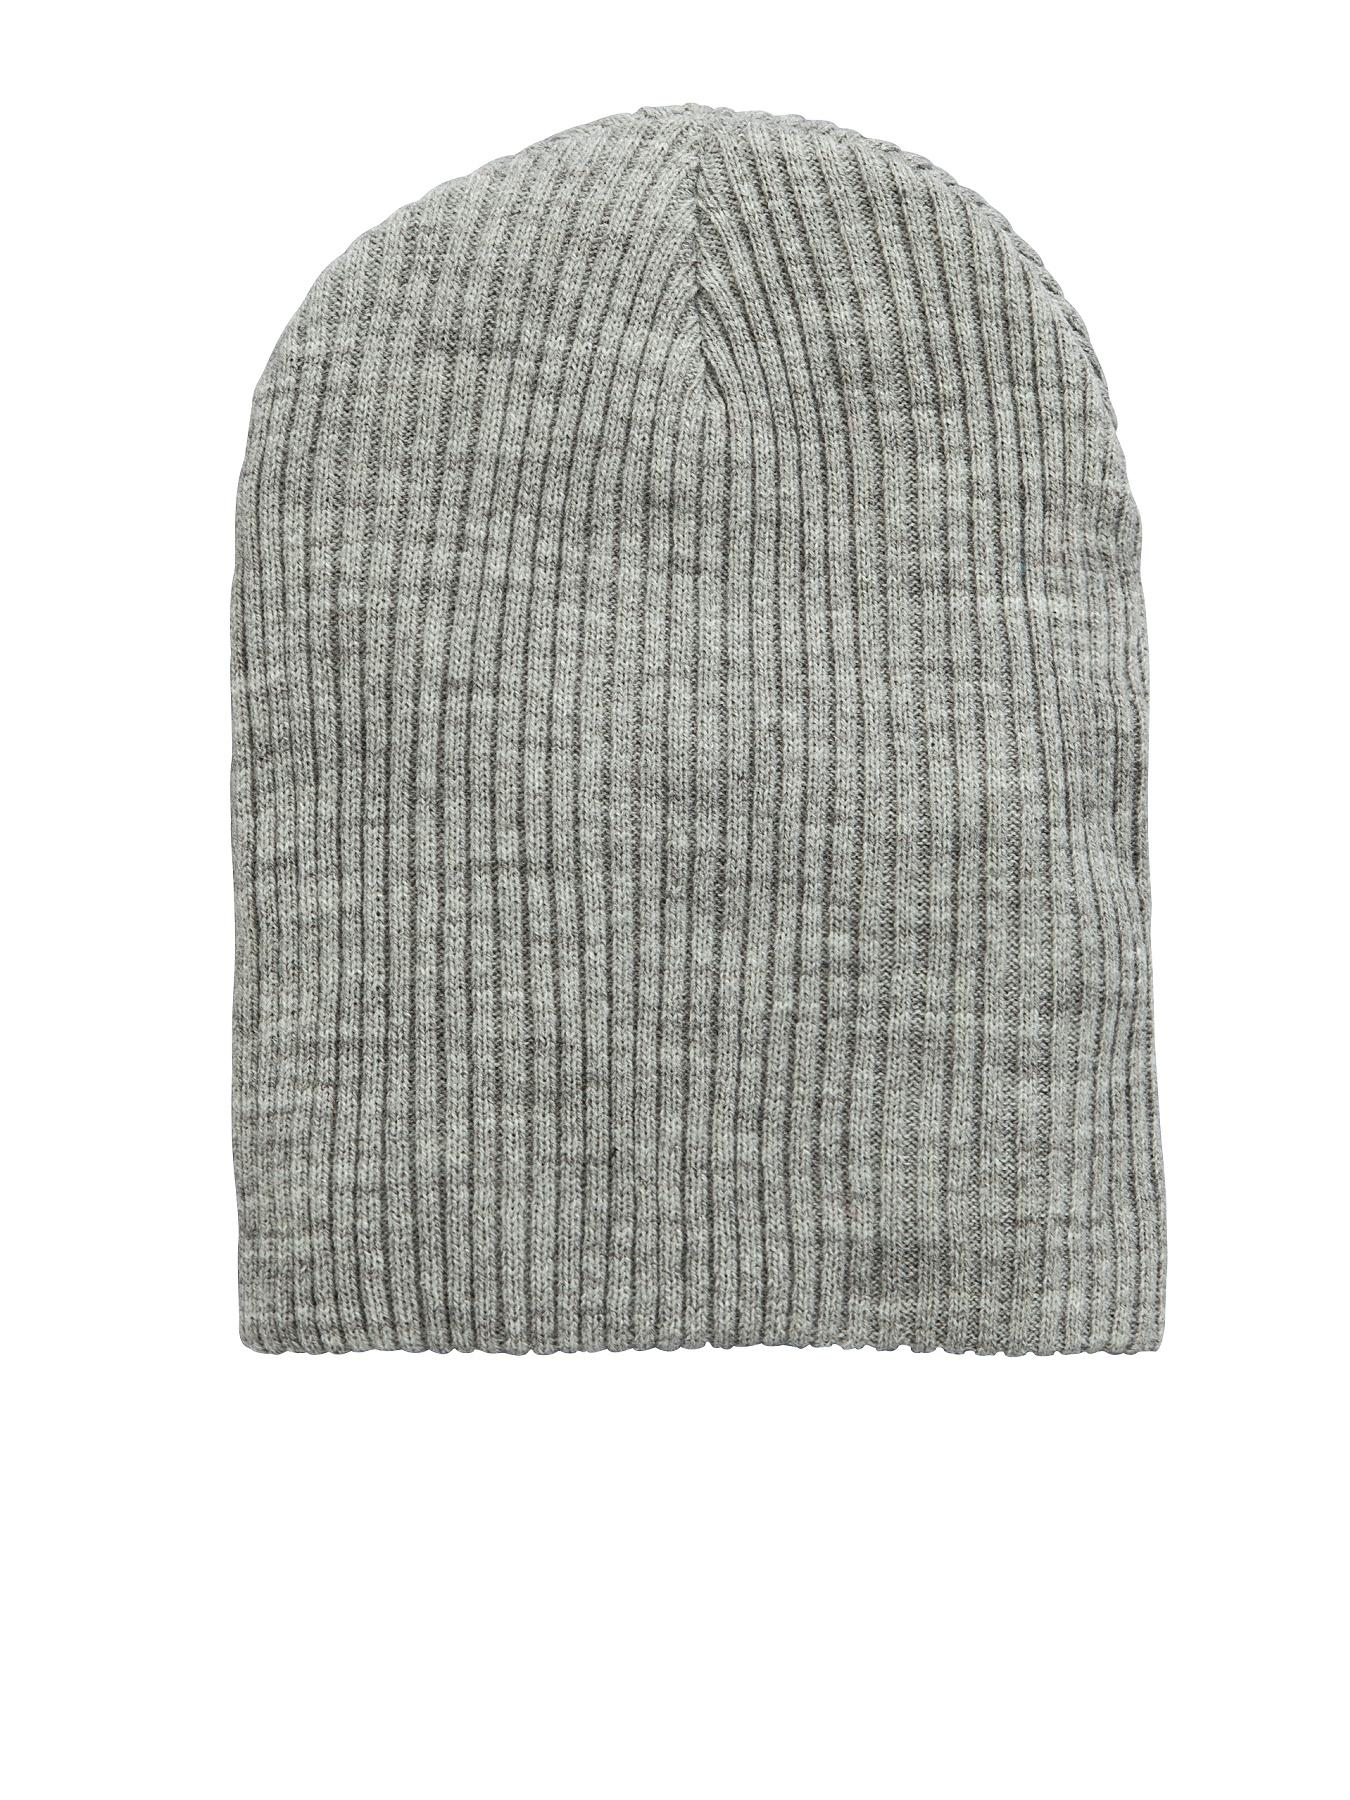 Mens Ribbed Slouch Beanie, Grey at Littlewoods